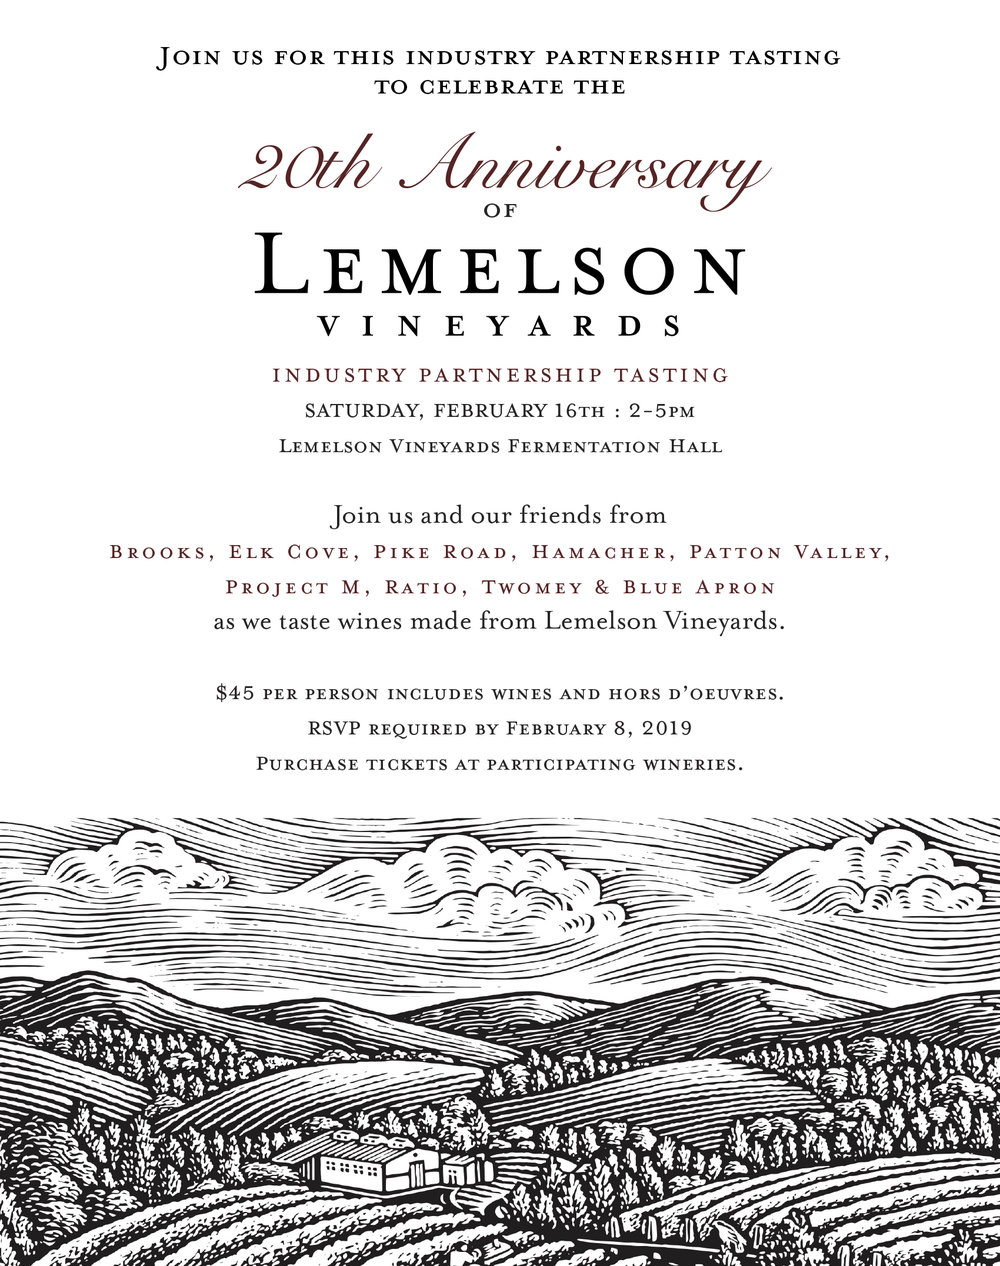 Industry Tasting Flyer winery version.jpg